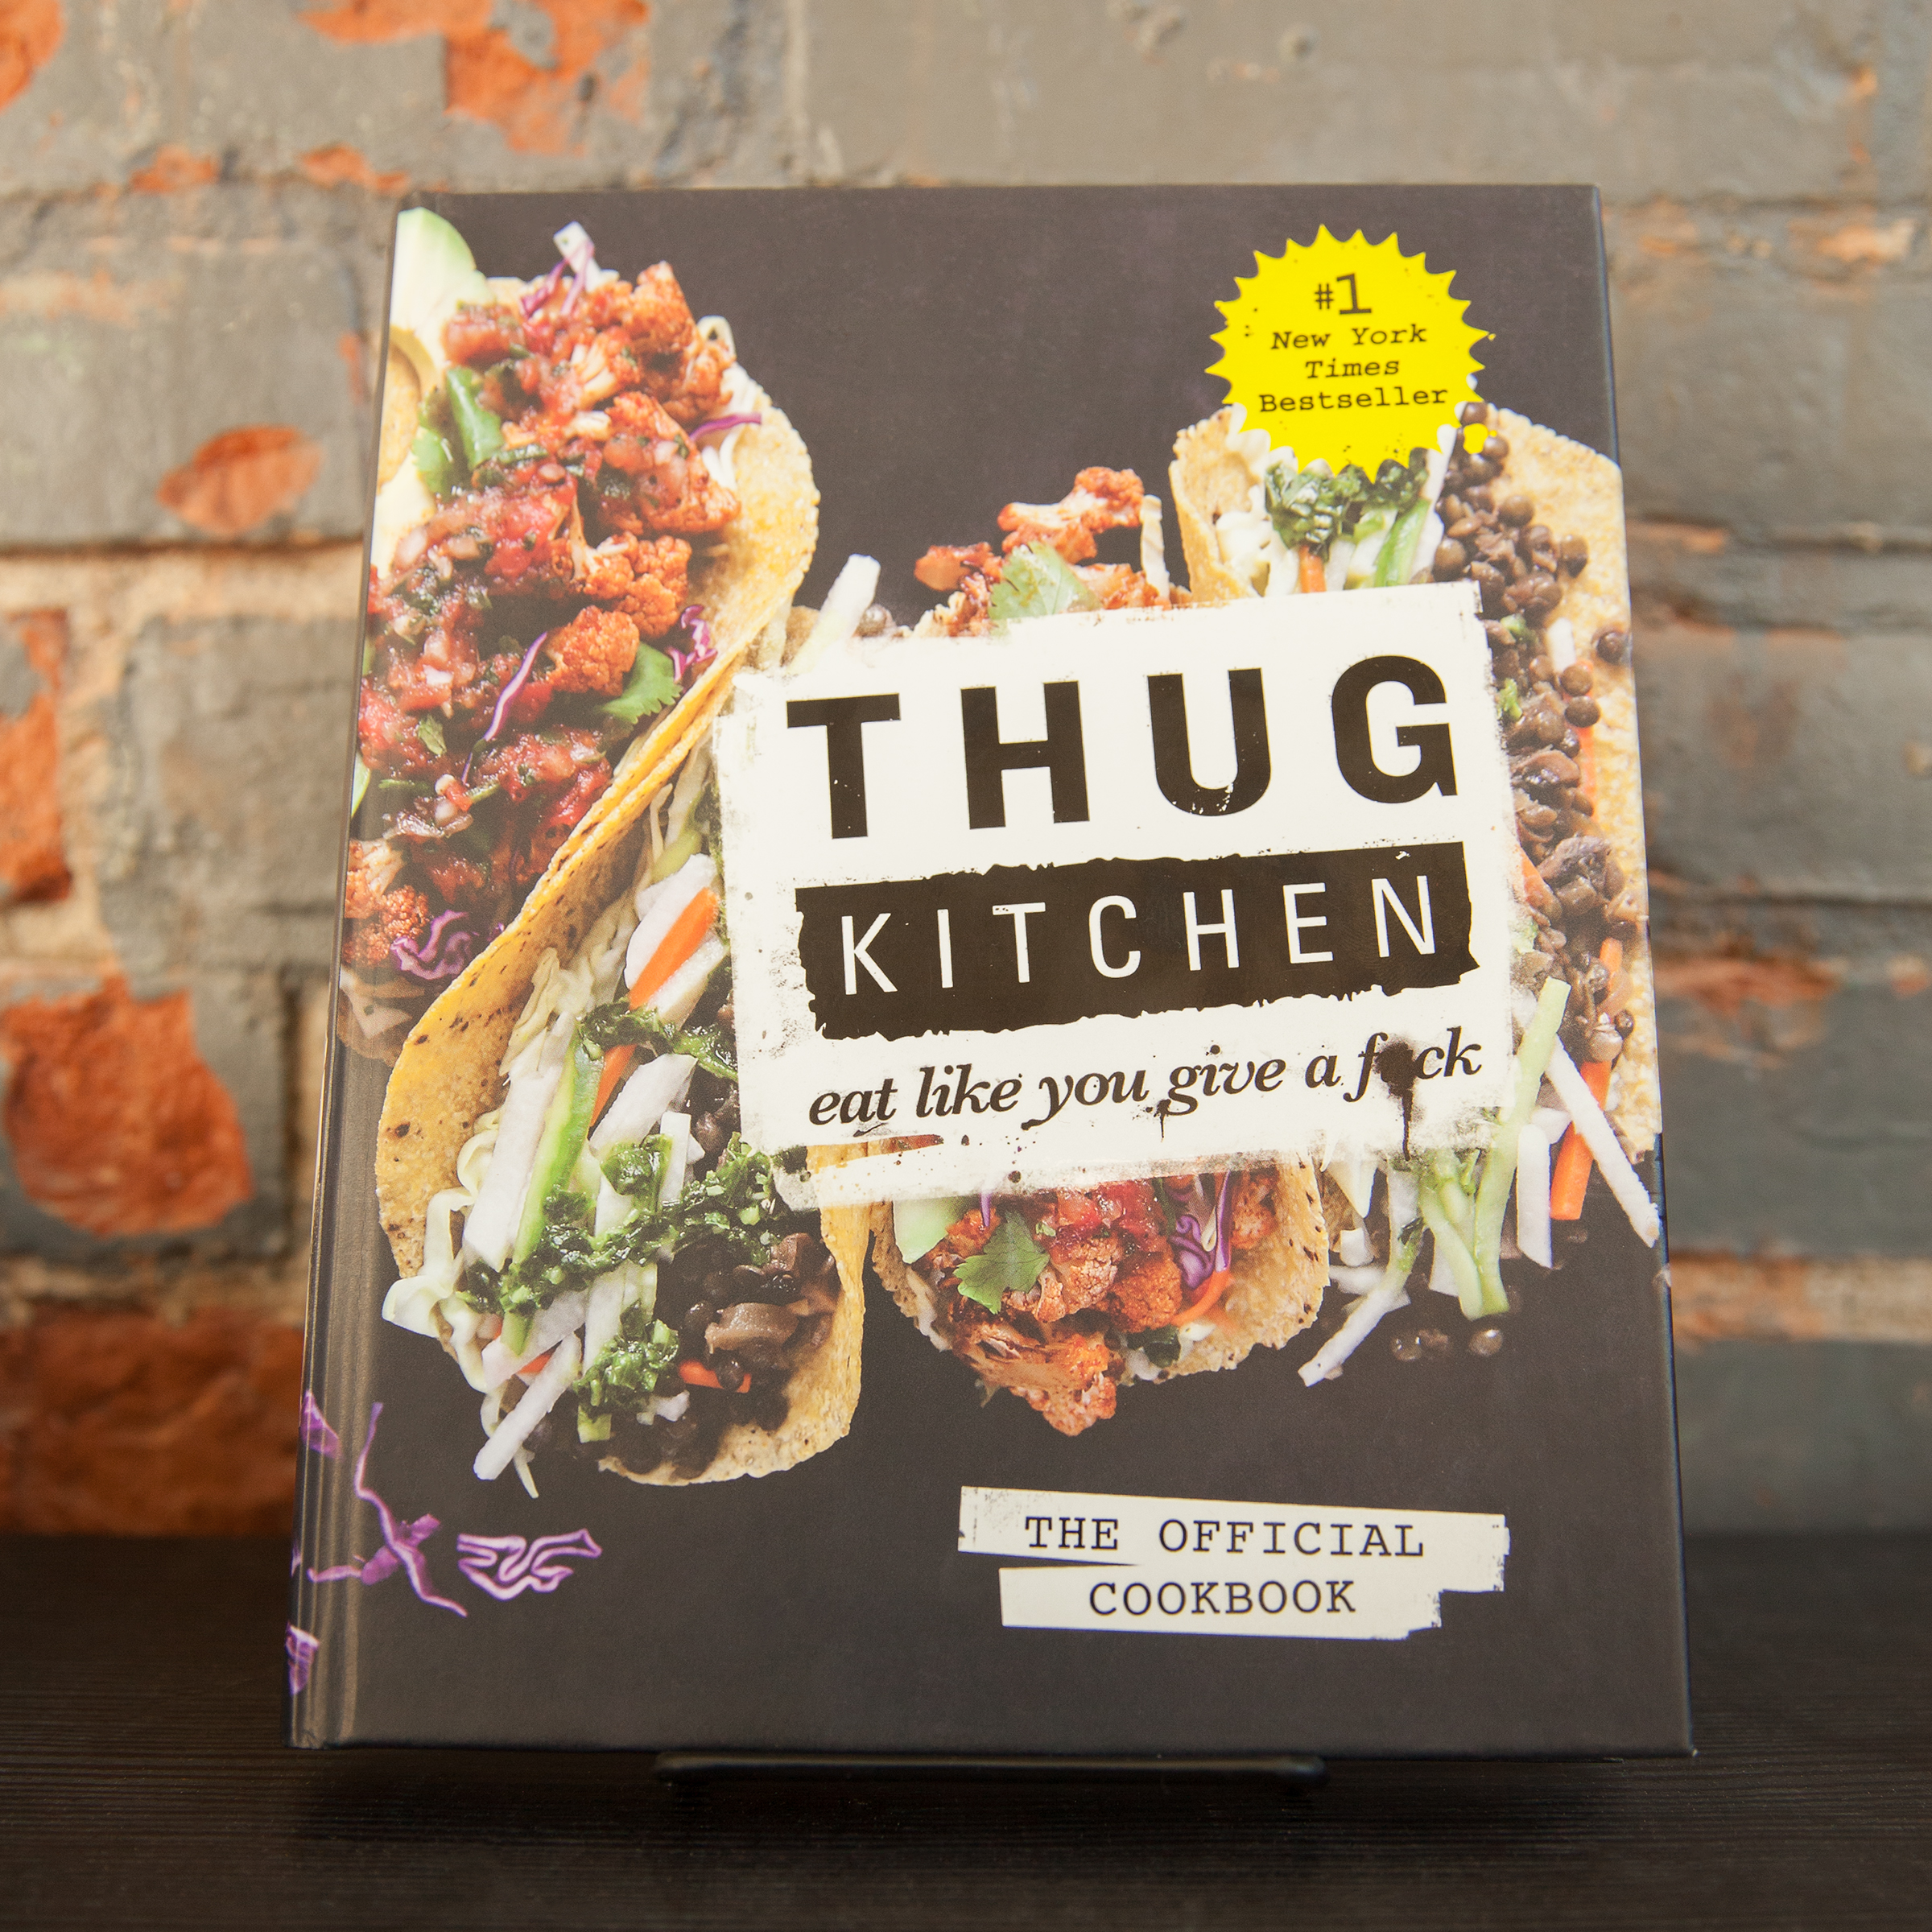 Groovy Thug Kitchen The Official Cookbook Eat Like You Give A F Ck Home Interior And Landscaping Eliaenasavecom